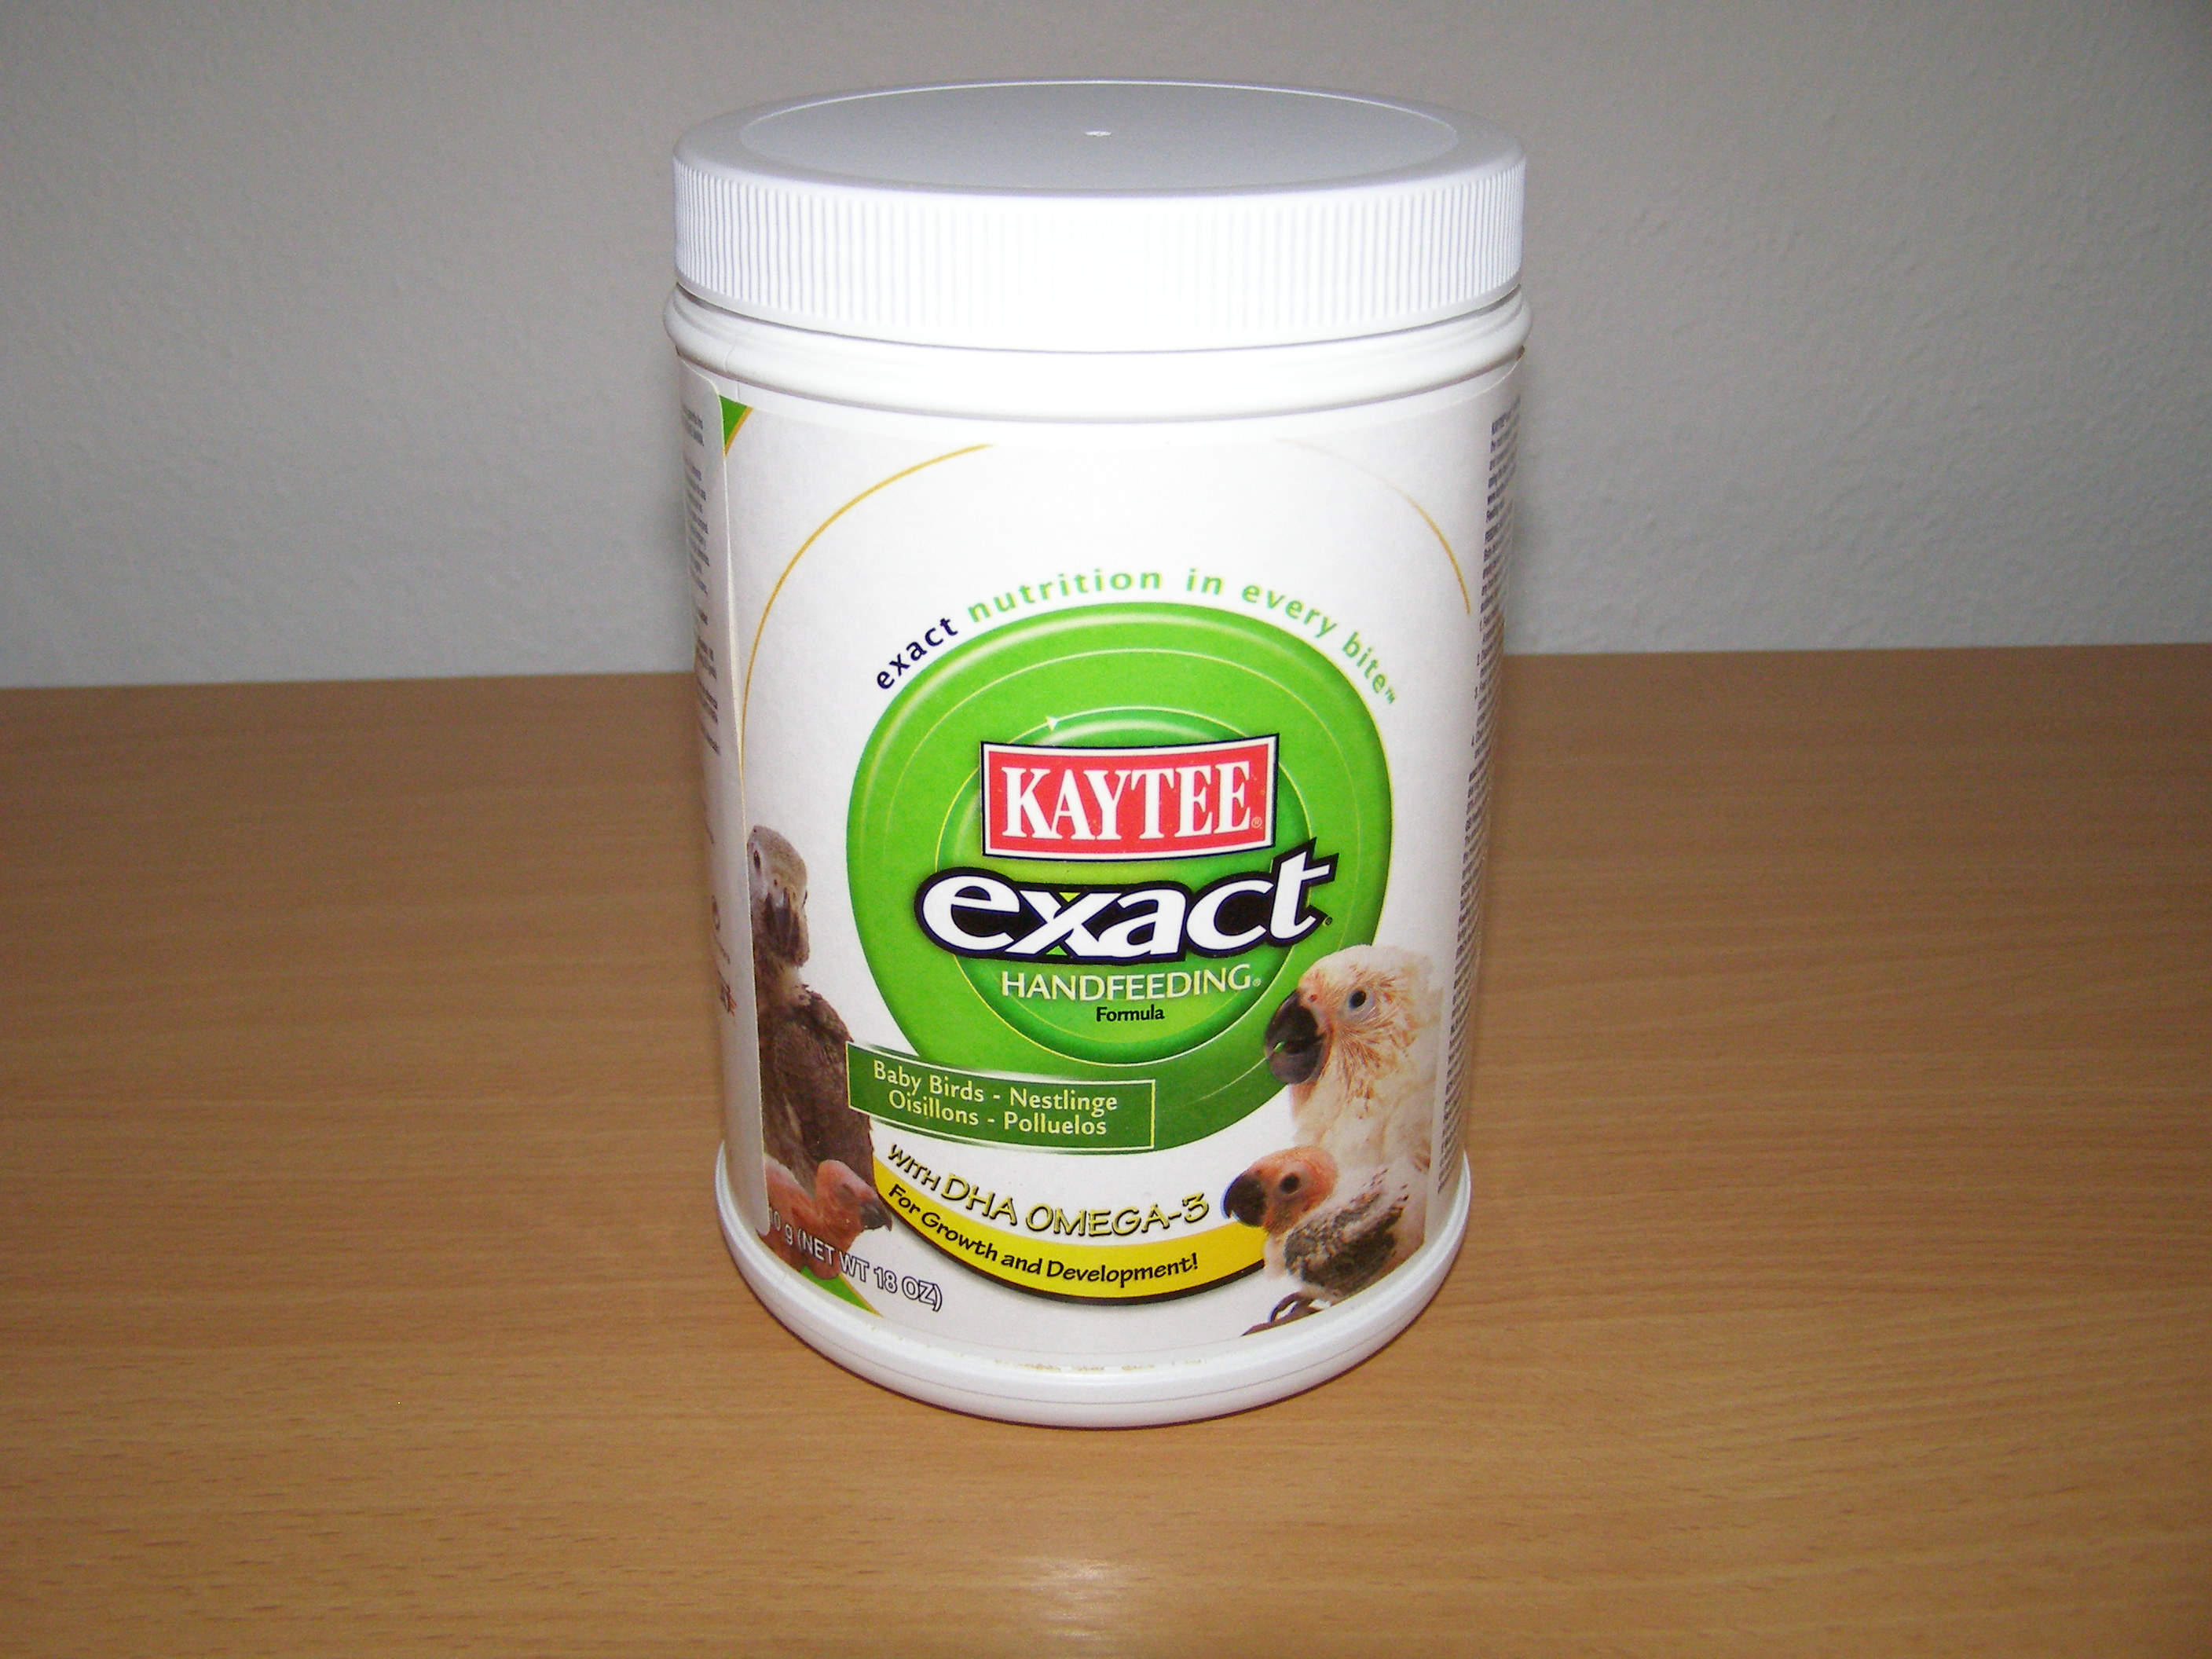 Kaytee Products Dokrmovací směs Exact Hand Feeding All Baby Birds s DHA 510 g